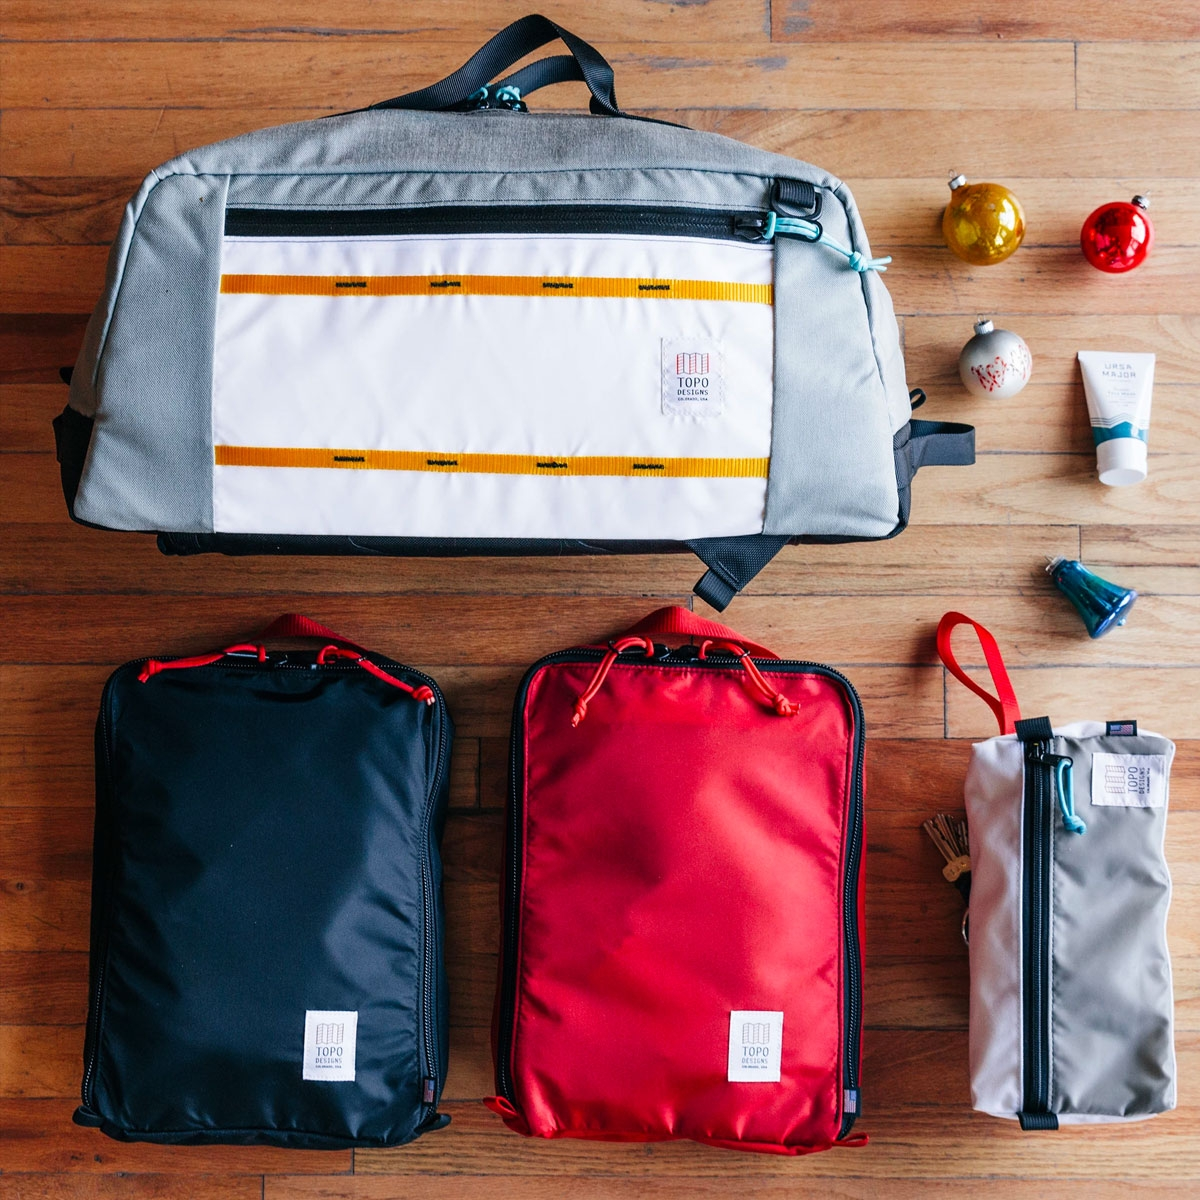 Topo Designs Pack Bags Navy, a simple, durable and highly functional way to organize your luggage